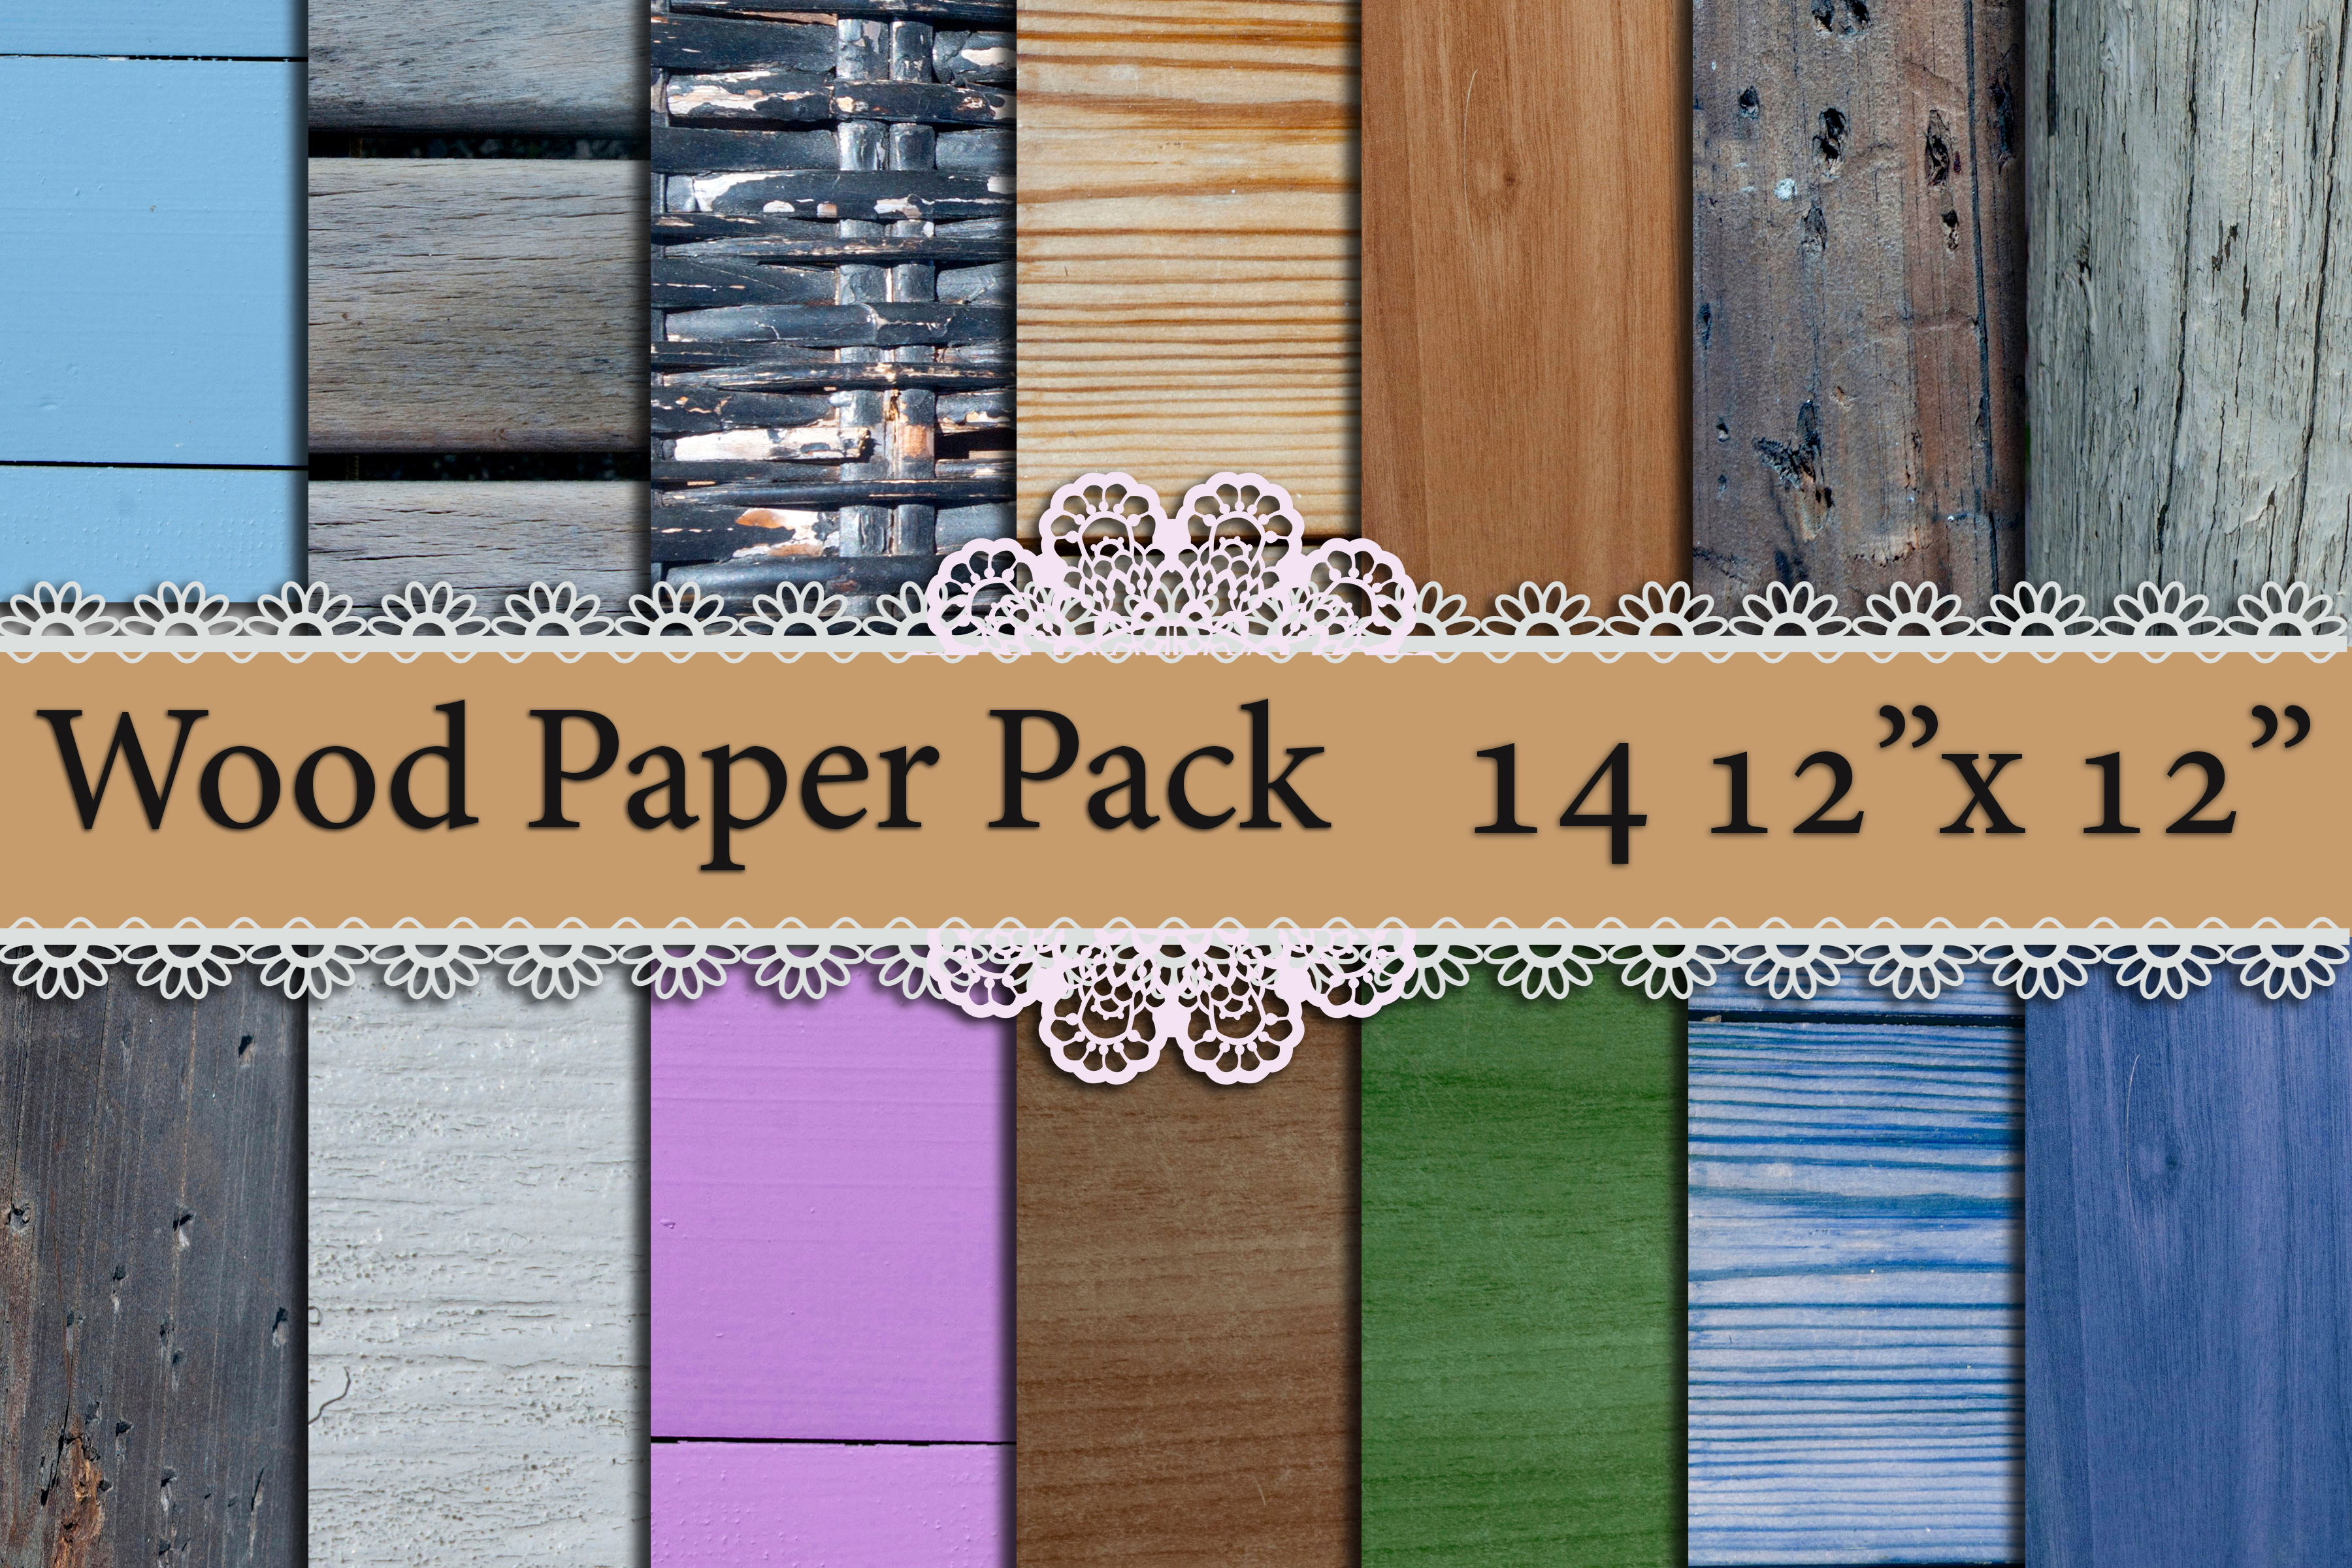 Wood Digital Paper Pack: Graphic Backgrounds By prettydesignstudio